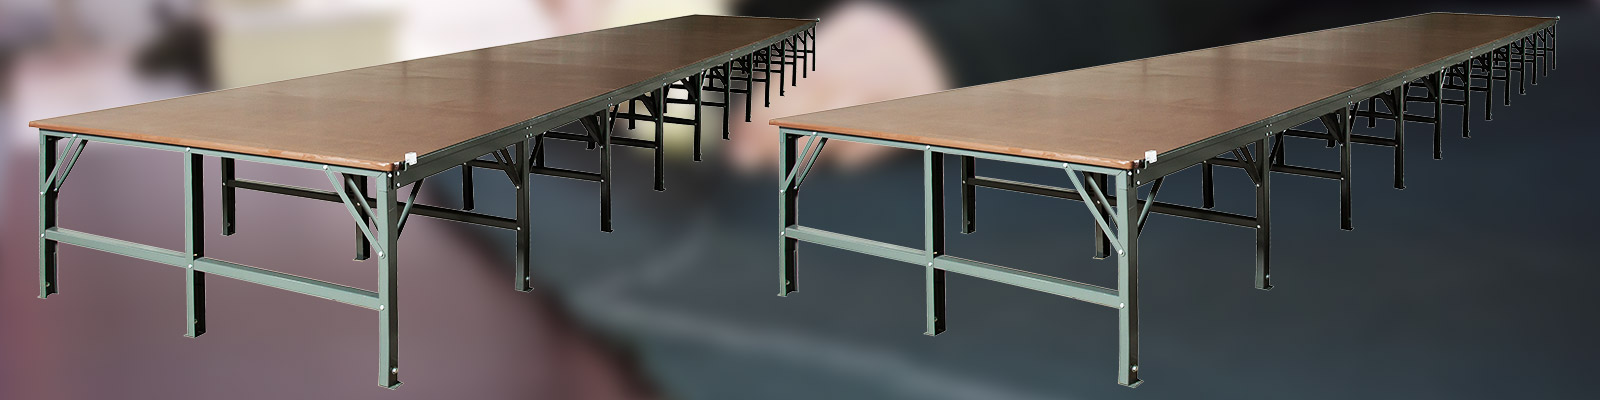 Export and Cutting Table Manufacturer in Gurugram